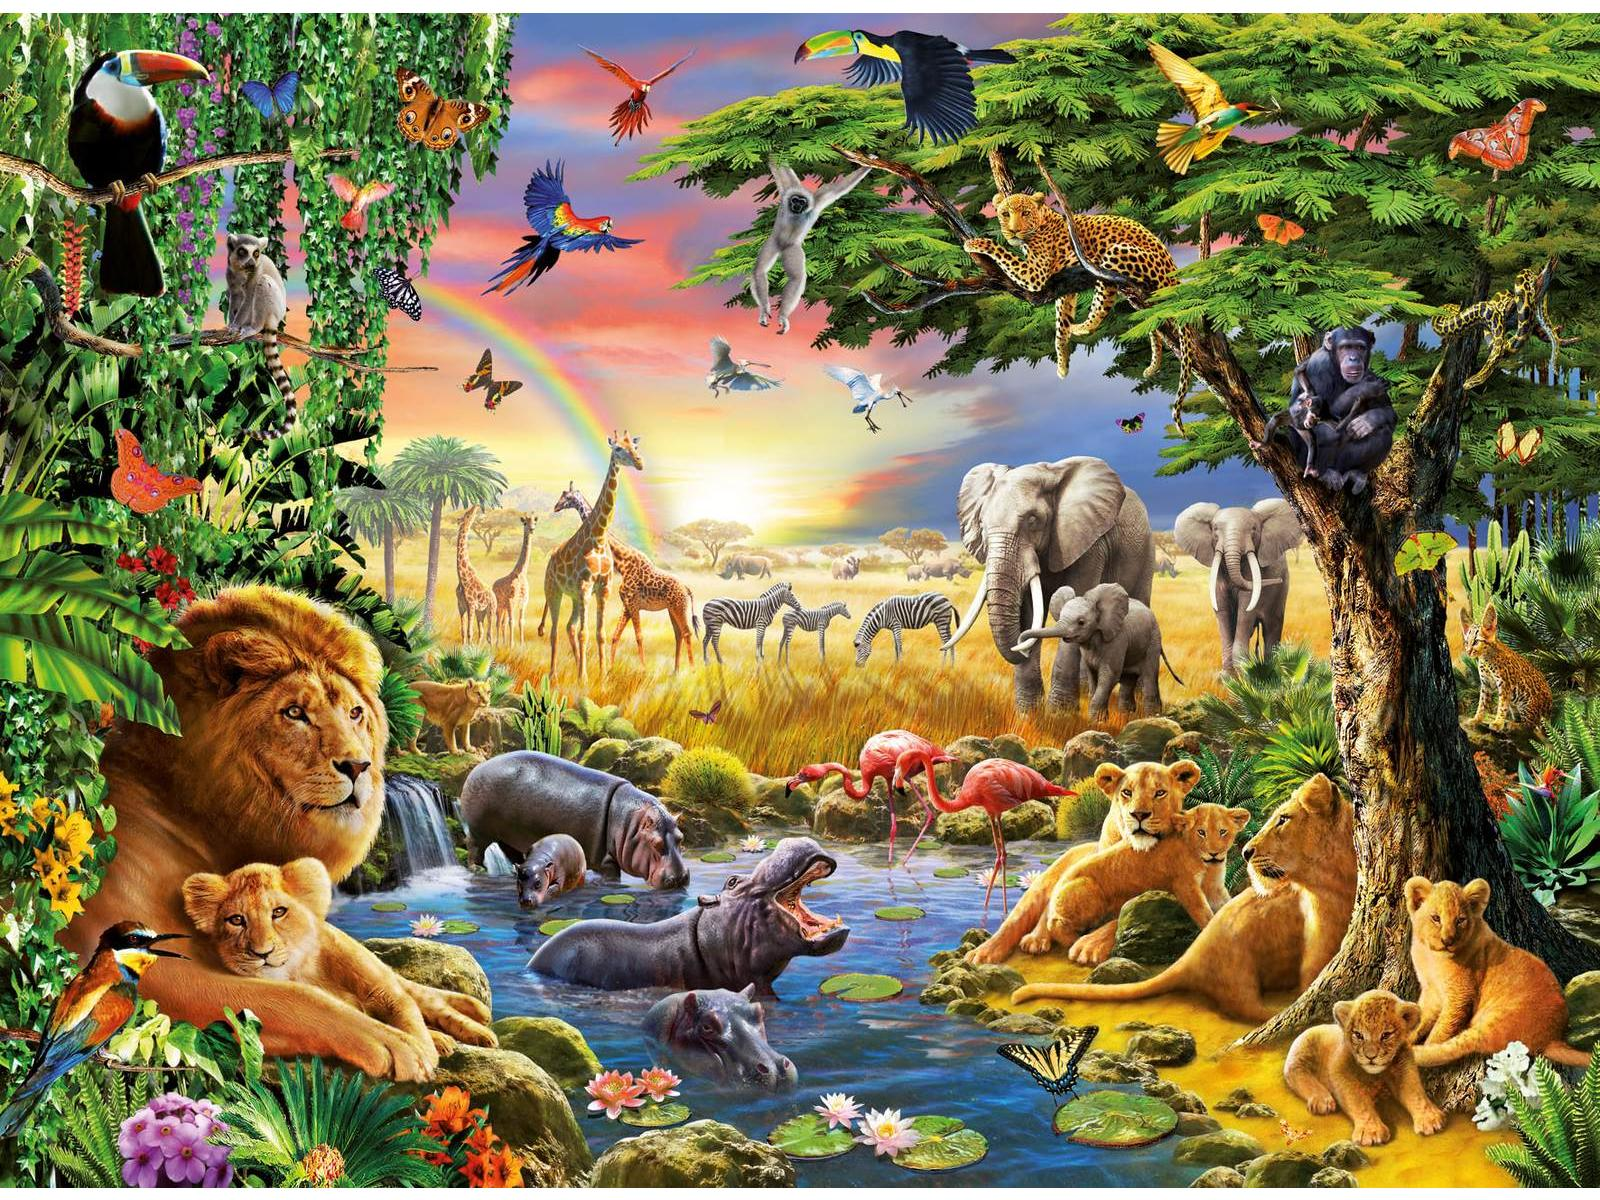 Jungle animals four wallpapers jungle animals four stock for Home wallpaper jungle